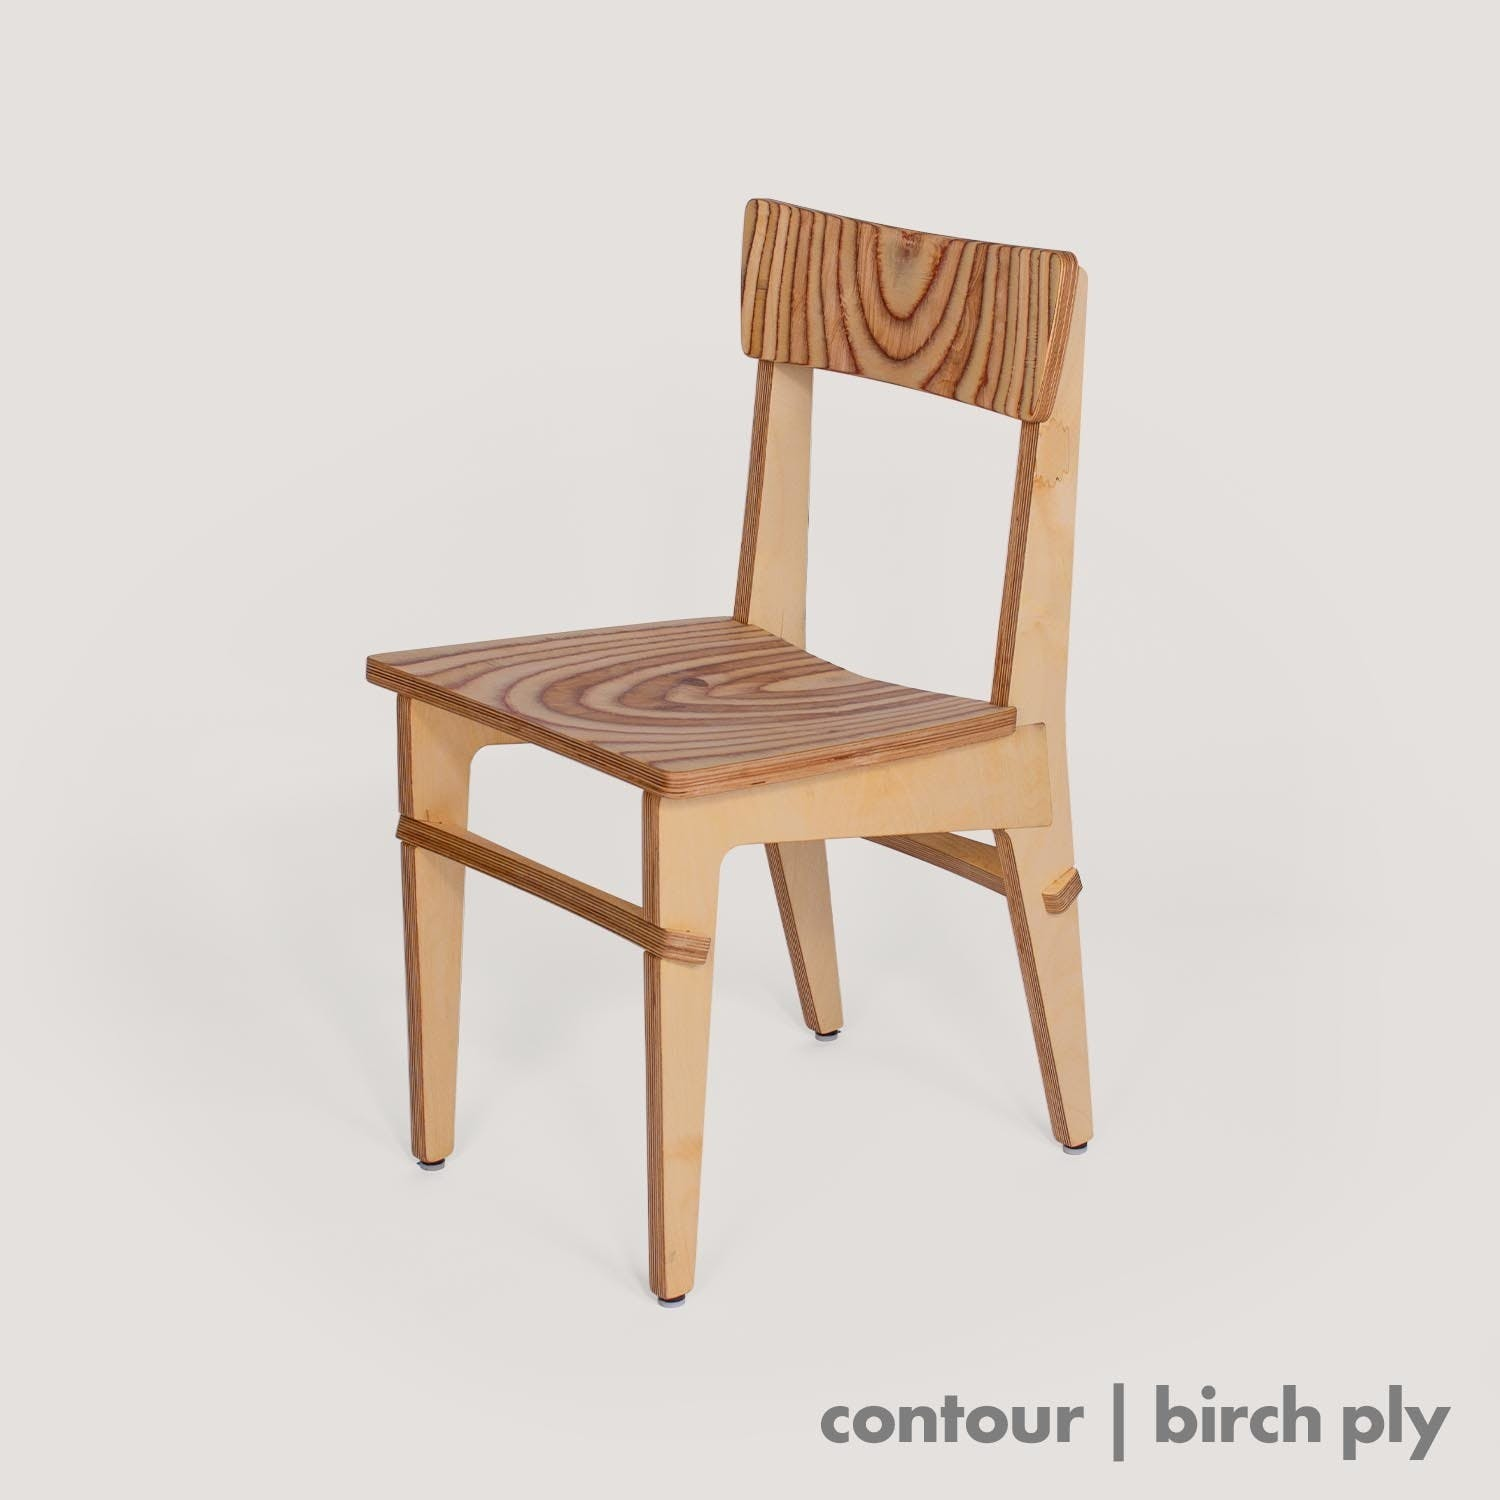 Contour Chair - birch ply